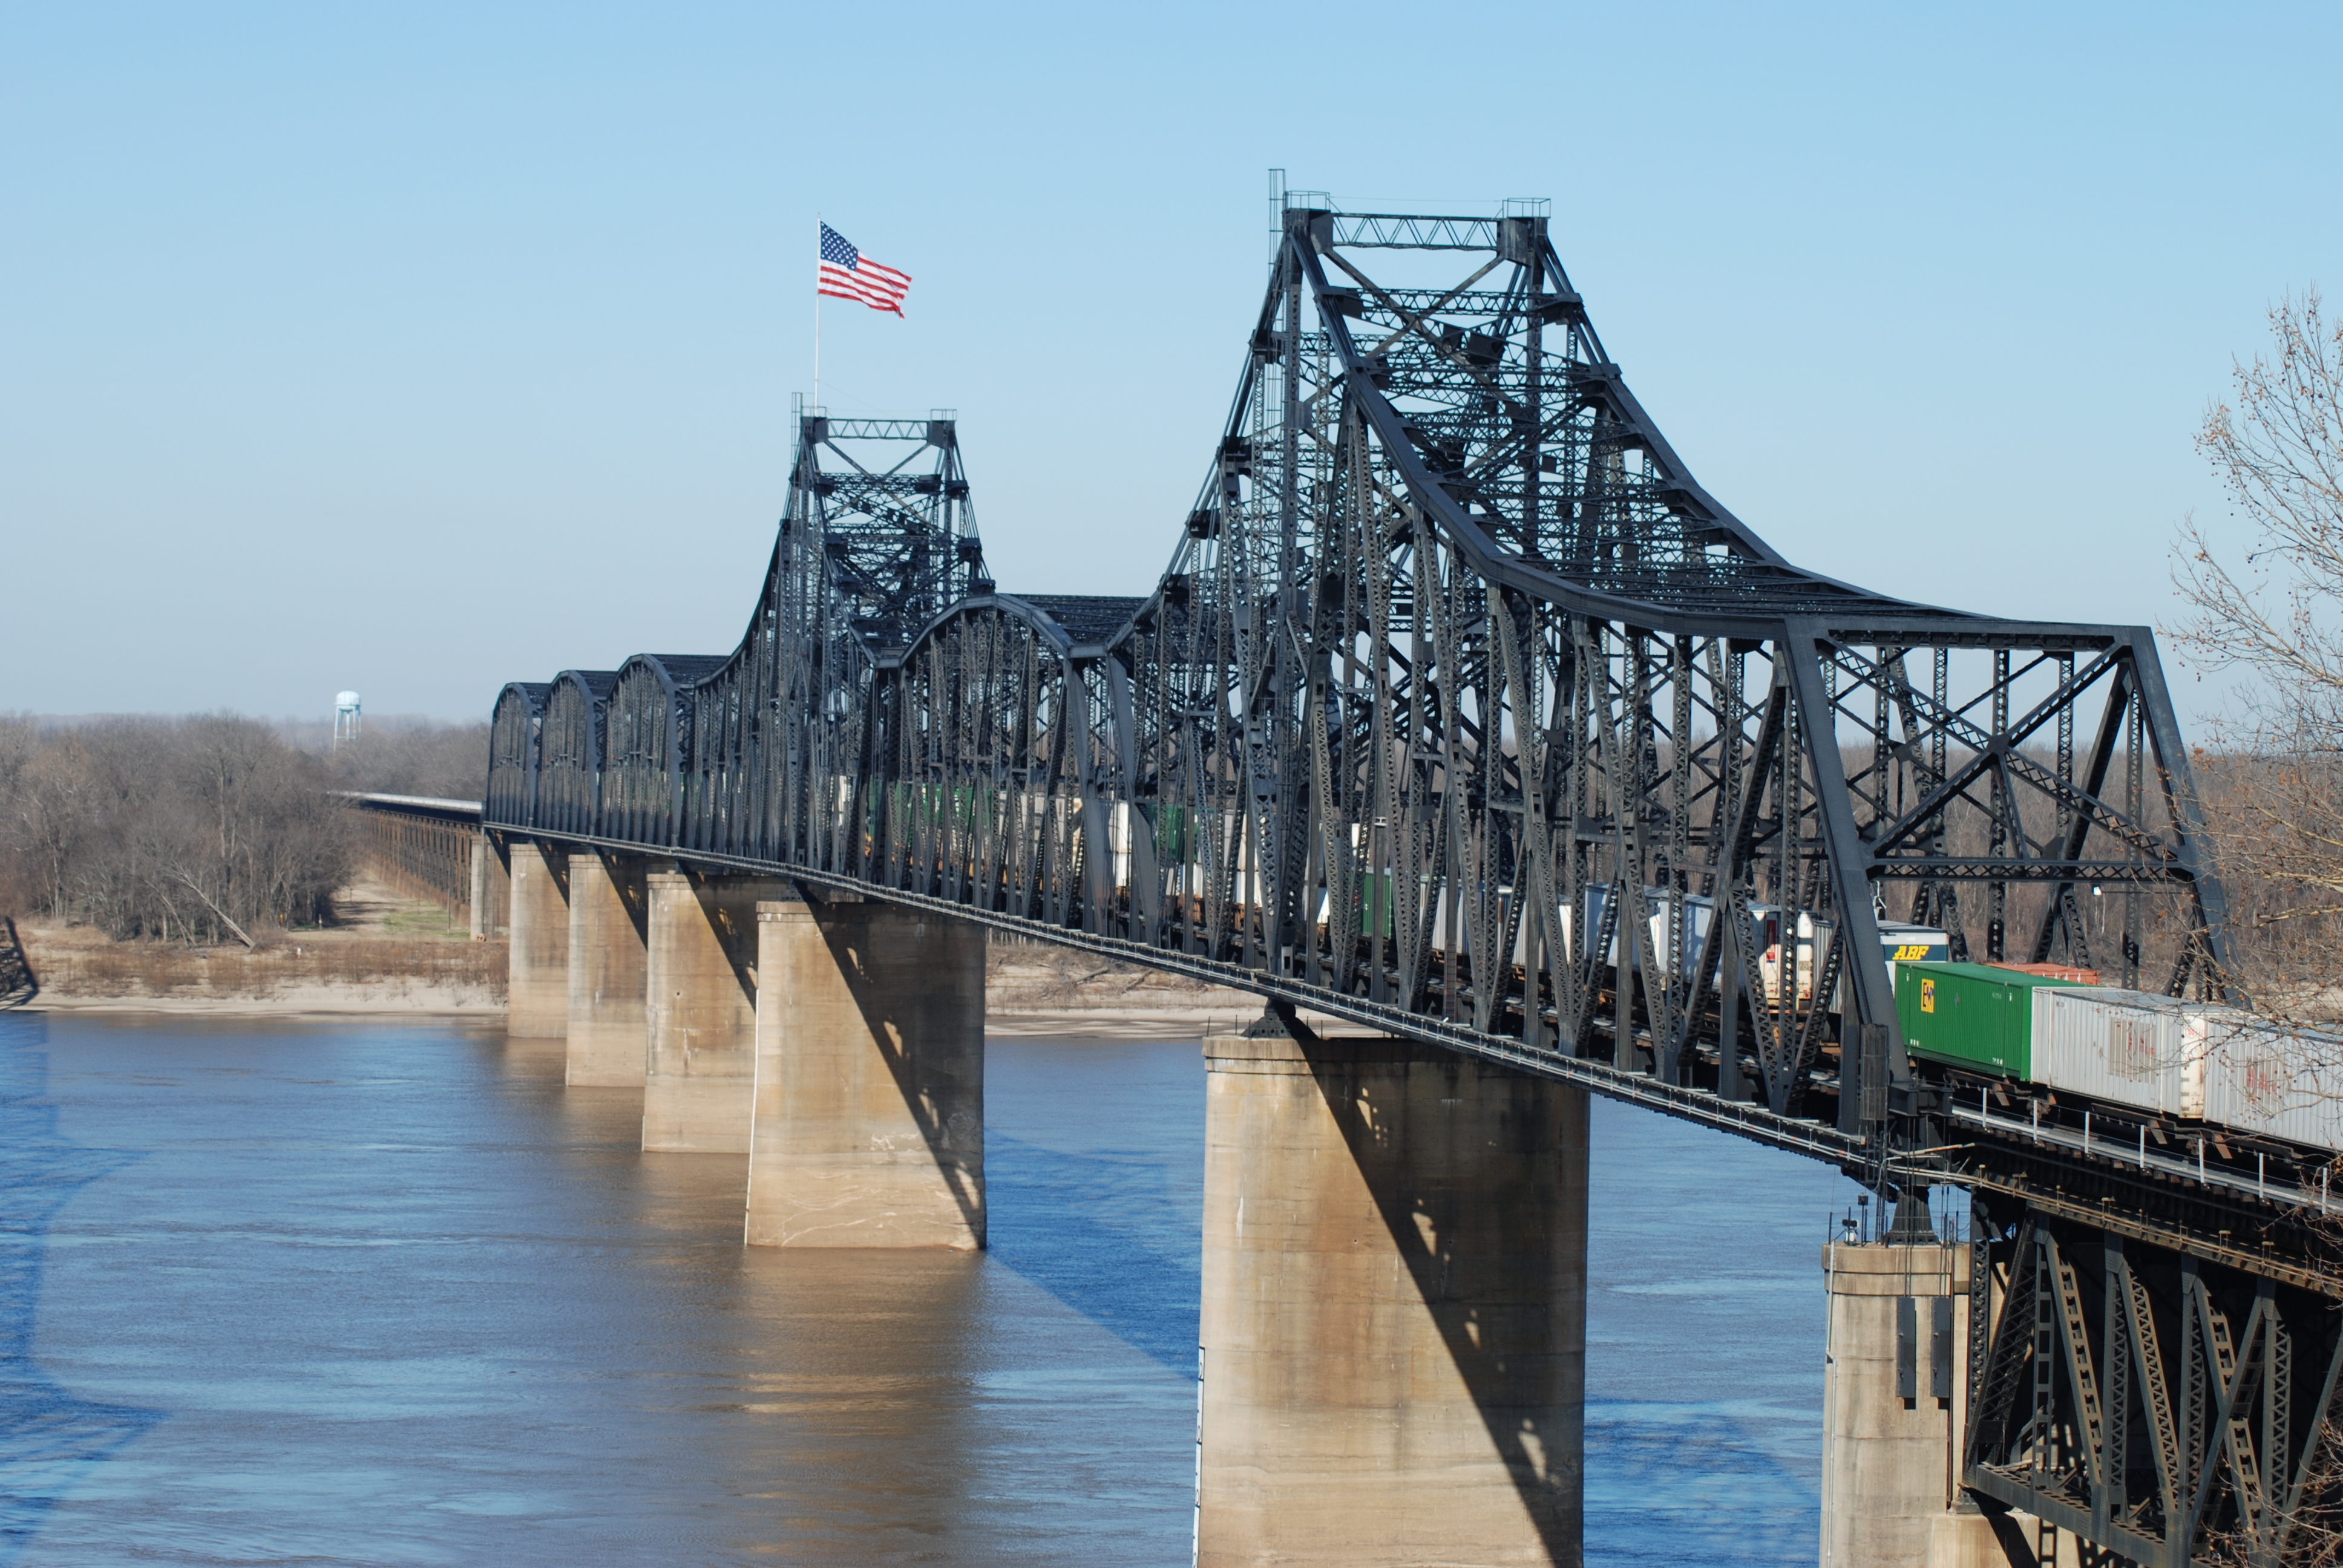 Old Vicksburg MS River Bridge